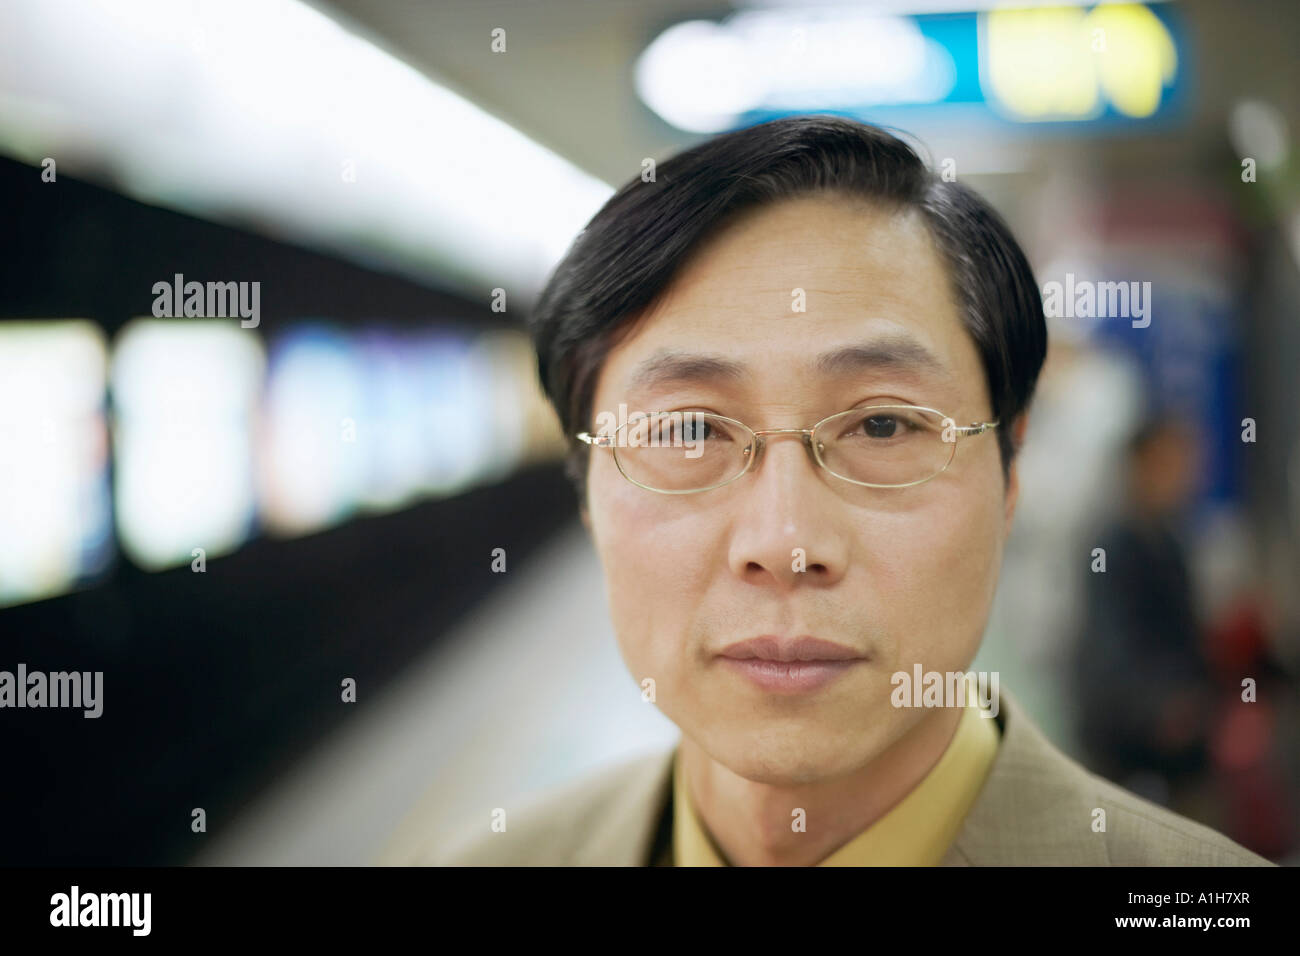 Portrait of a businessman at a subway station - Stock Image